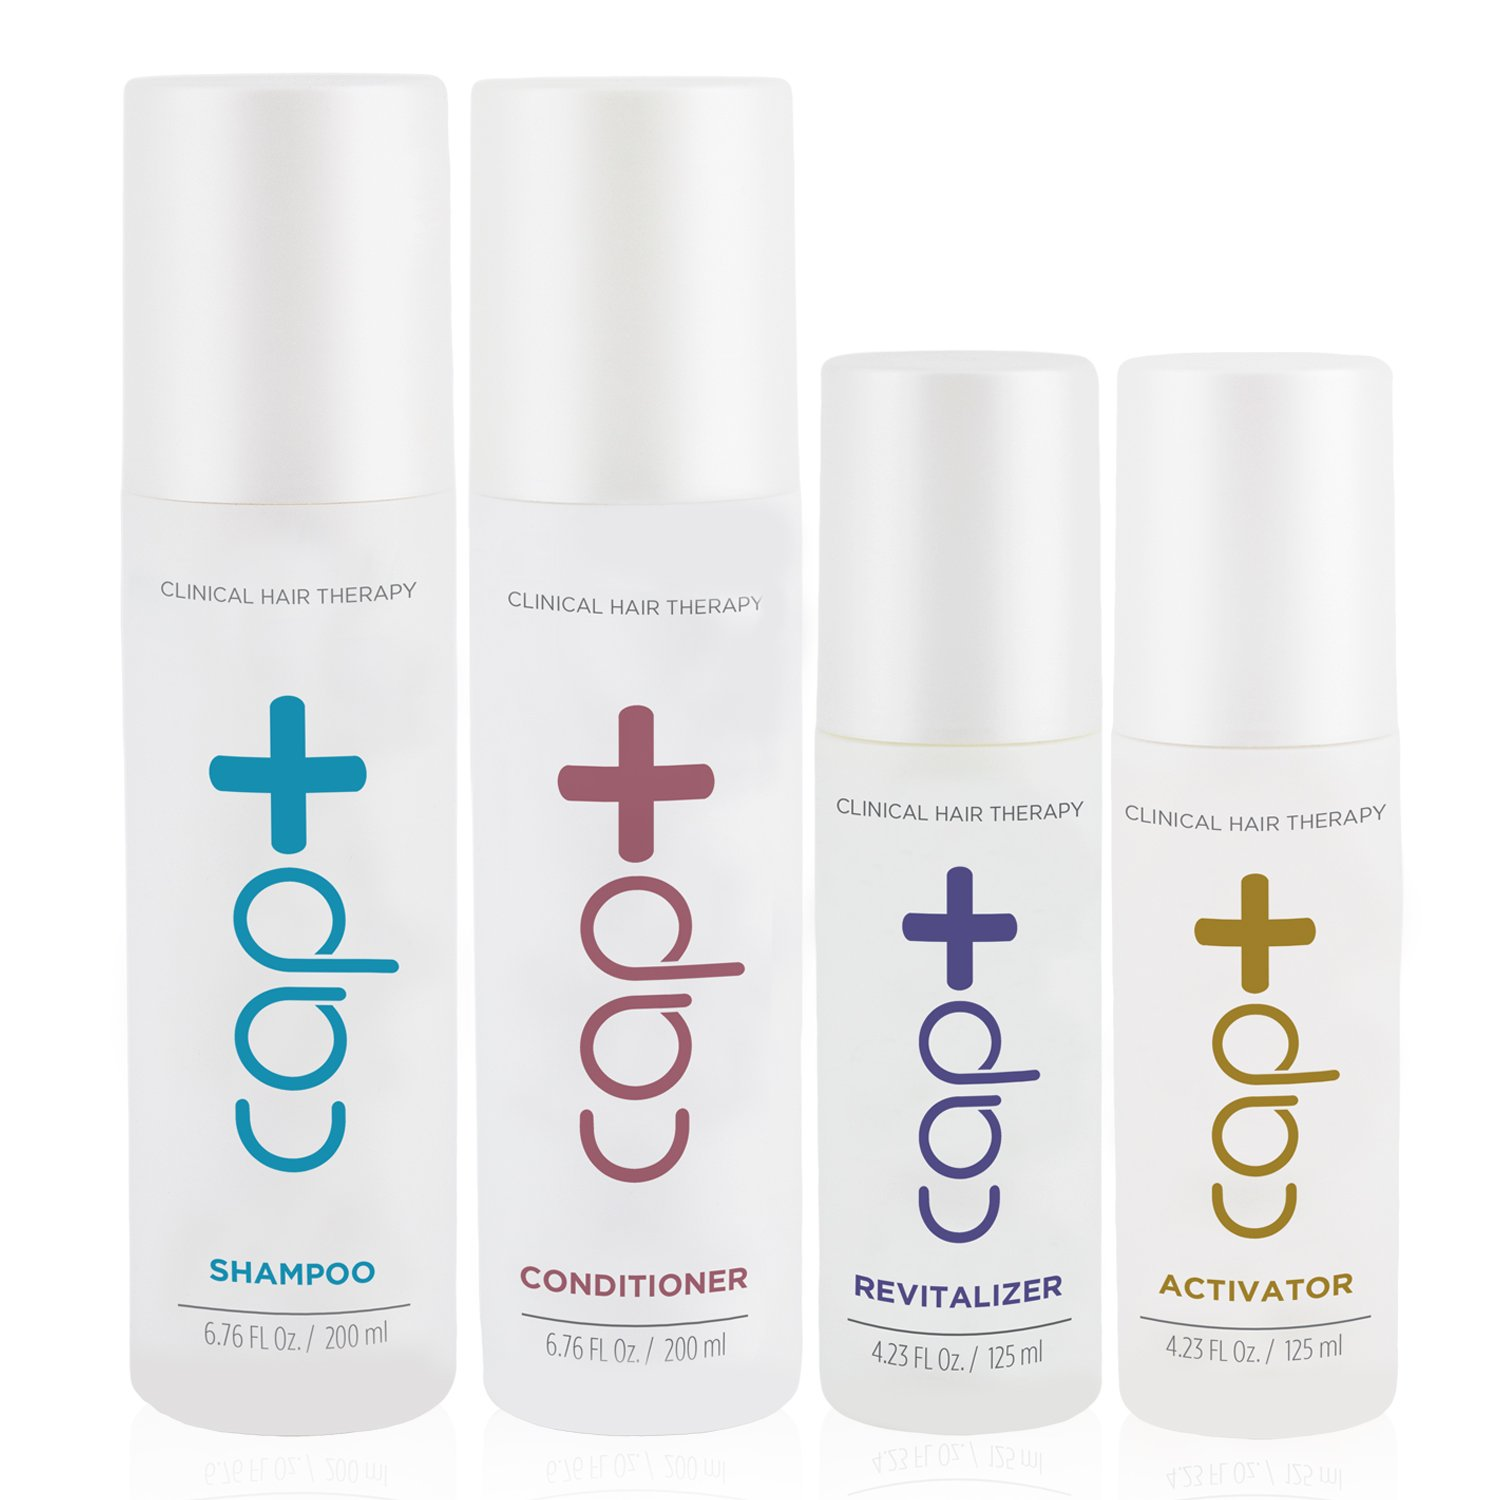 Cap+ Clinical Hair Therapy Bundle (Includes: Shampoo, Conditioner, Activator, and Revitalizer) for use in conjunction with the Capillus low-level light therapy devices by Capillus (Image #1)